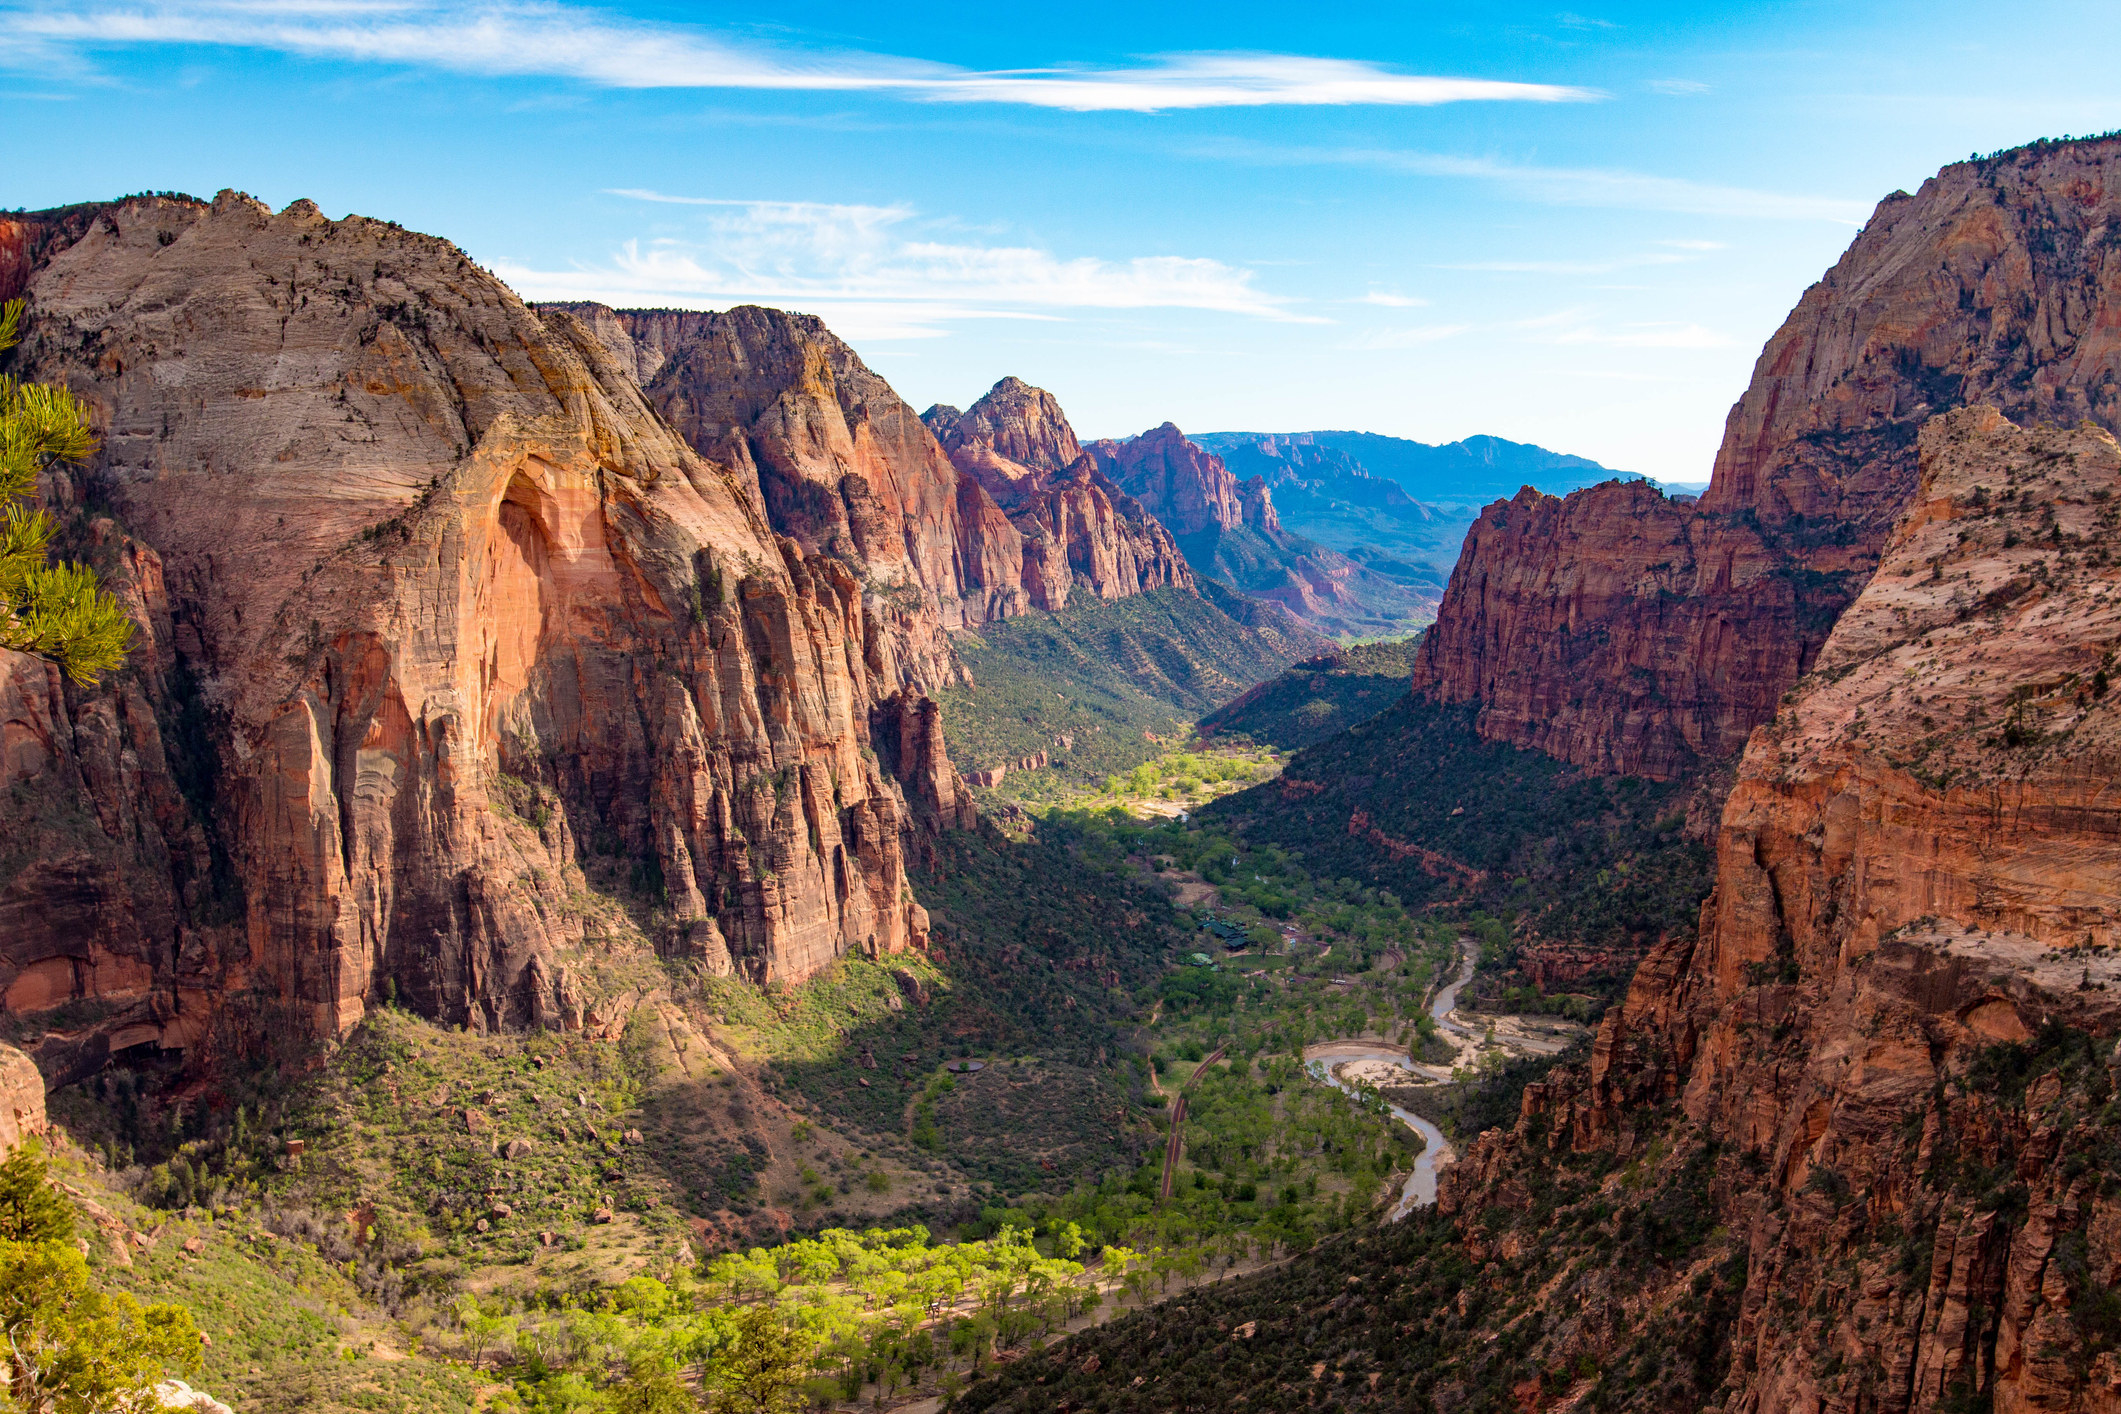 spectacular view from Angels Landing; a lush green valley is surrounded by rocky red mountains and cliffs